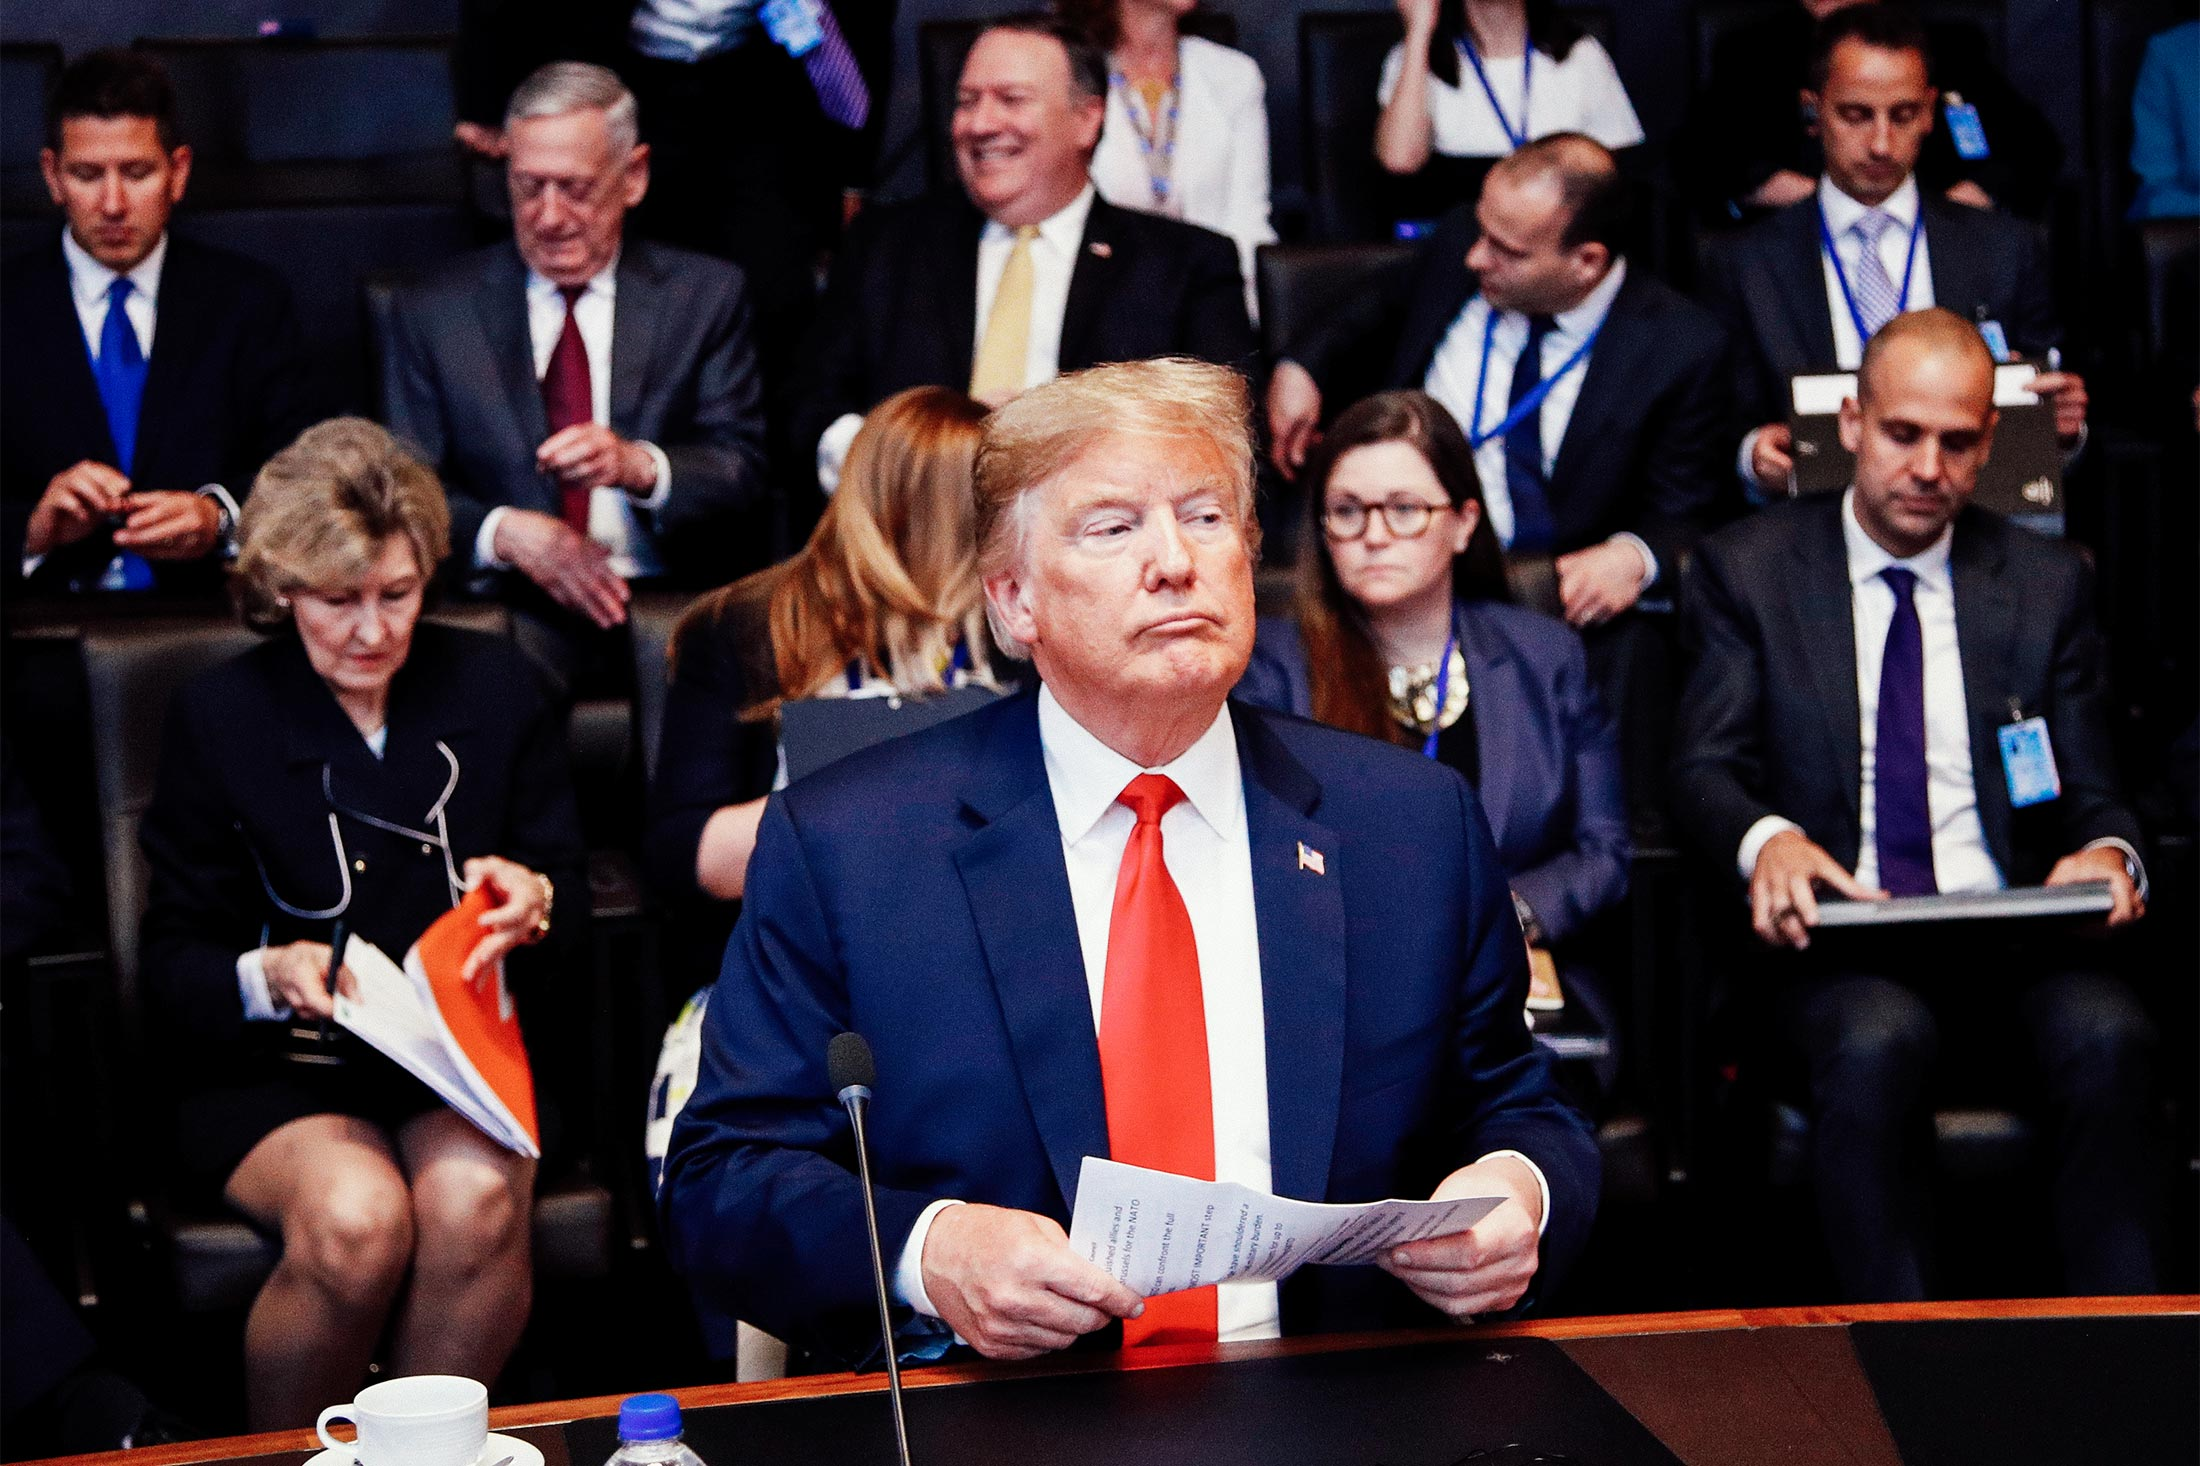 U.S. President Donald Trump attends a meeting of the North Atlantic Council during a NATO summit in Brussels.